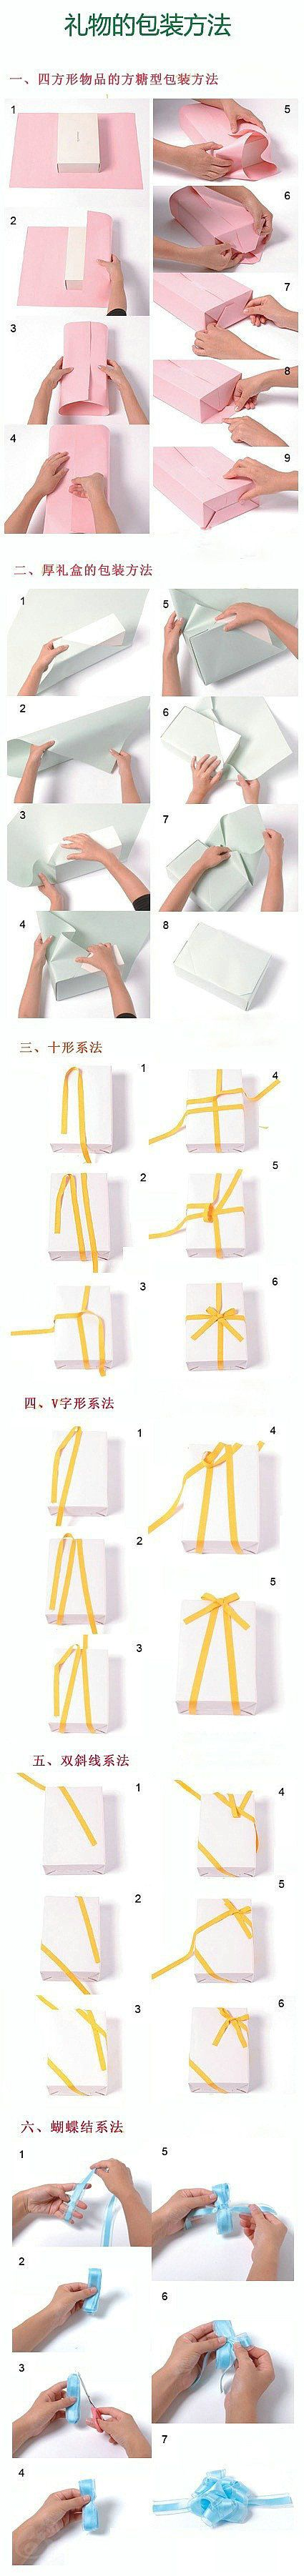 Gift Wrapping Skill: JAPANESE style (only use one piece of tape!)